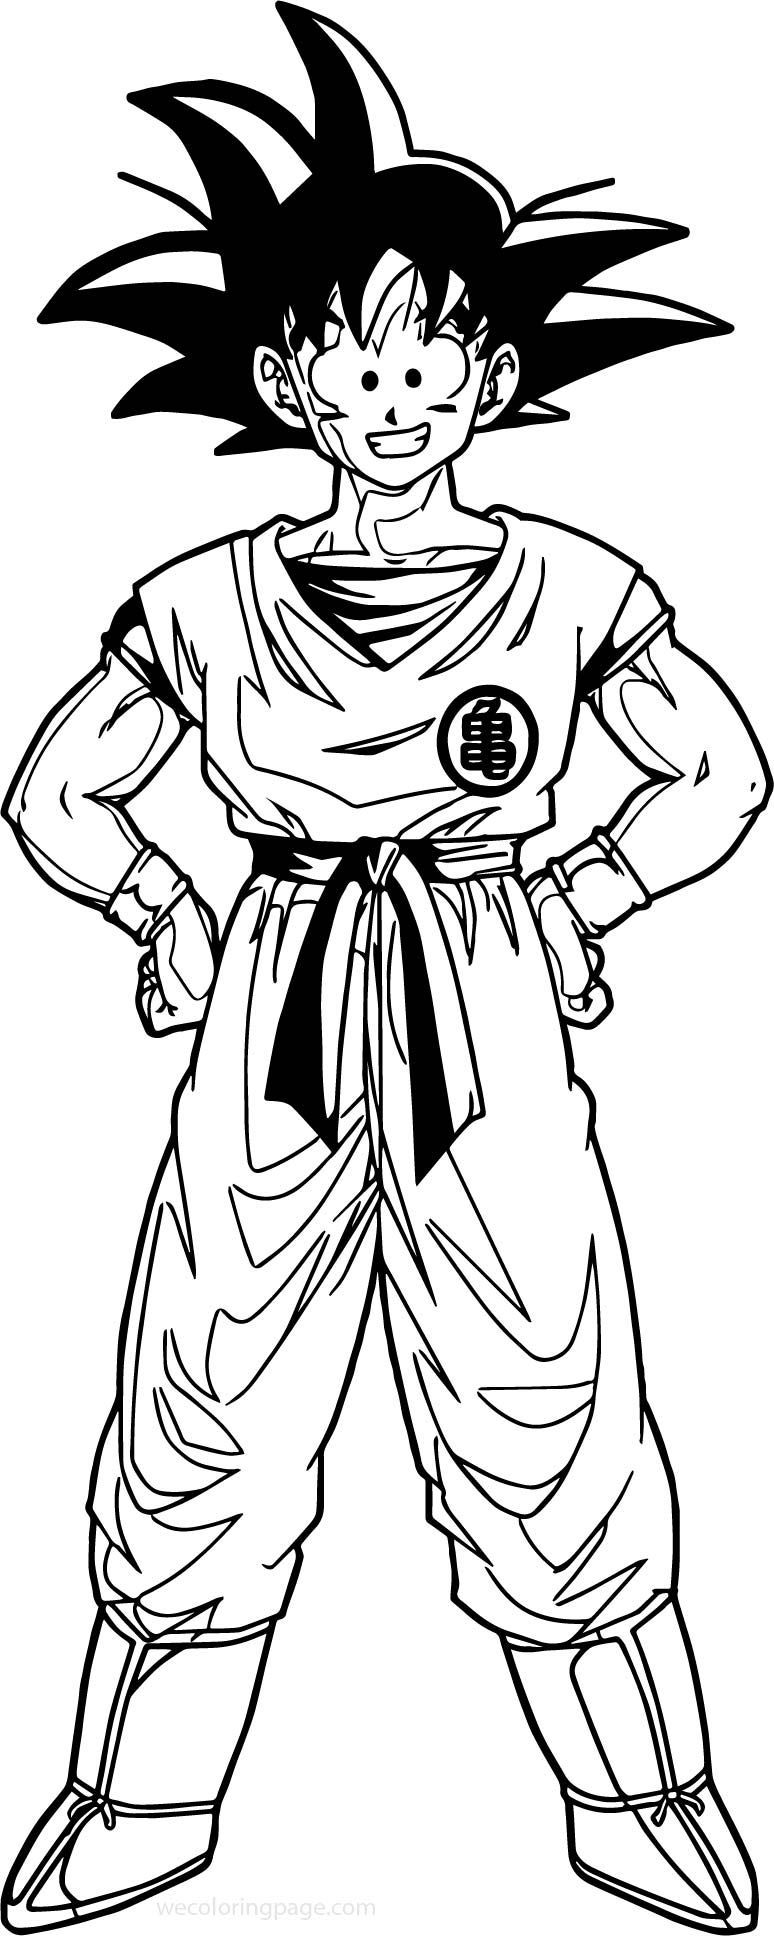 goku printable coloring pages 29 cool image of goku coloring book coloring pages coloring goku printable pages